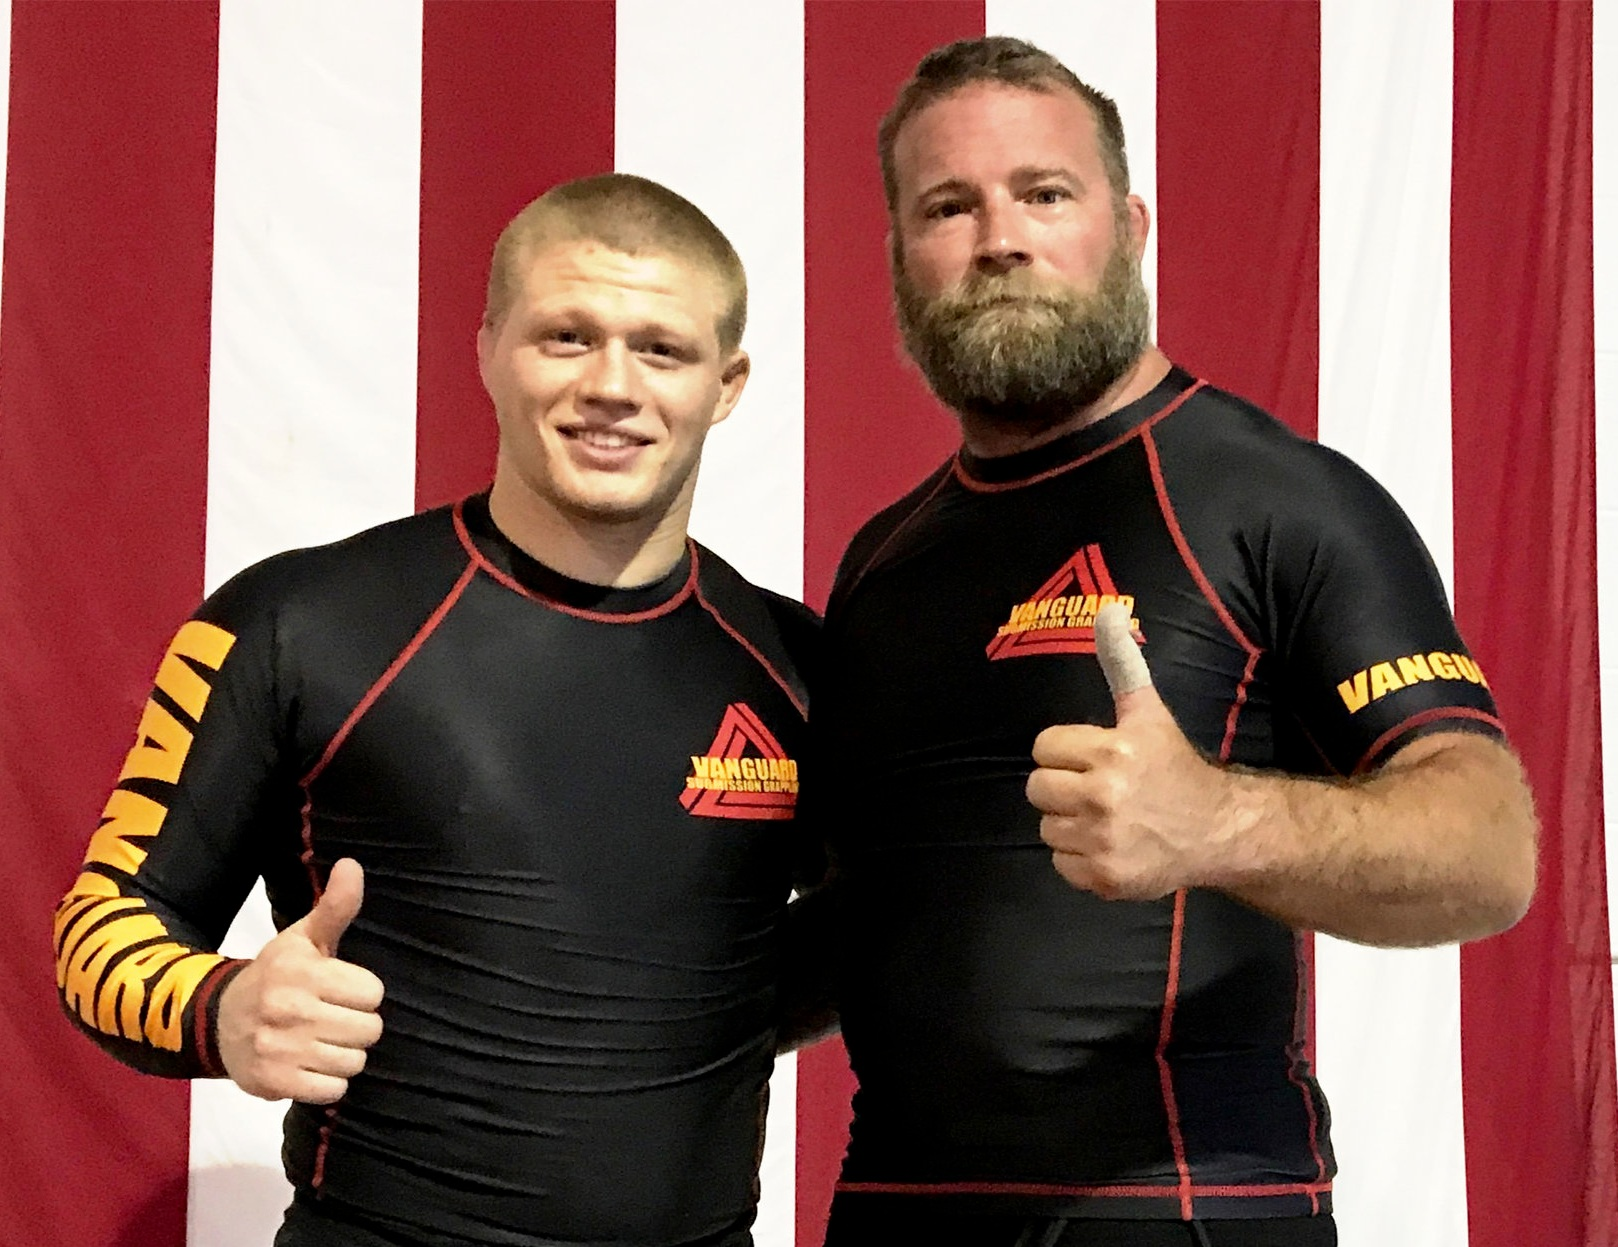 We are the area's premiere training location for Gi and No-Gi Submission Grappling - We feature noon and evening training classes for both daily.